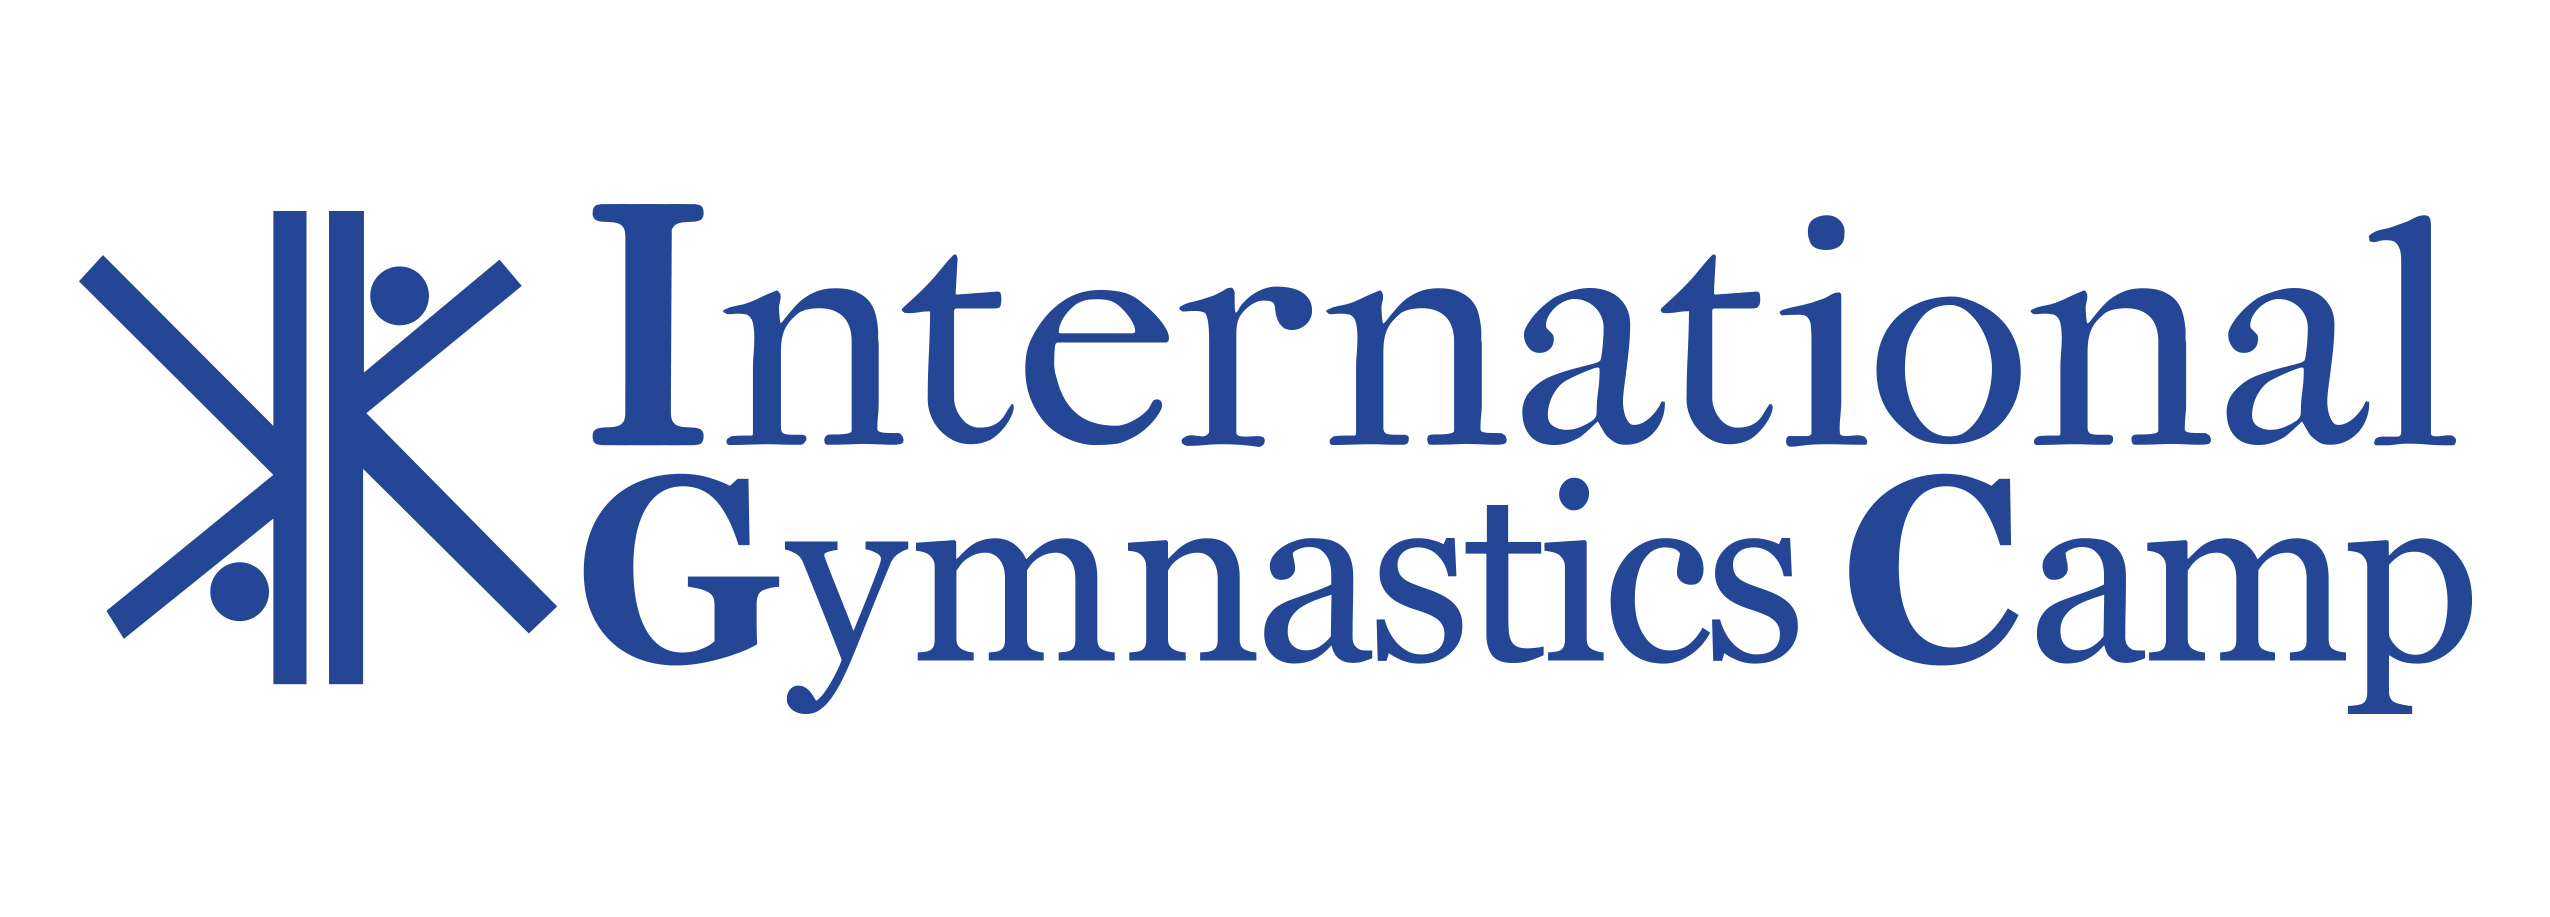 International Gymnastics Camp